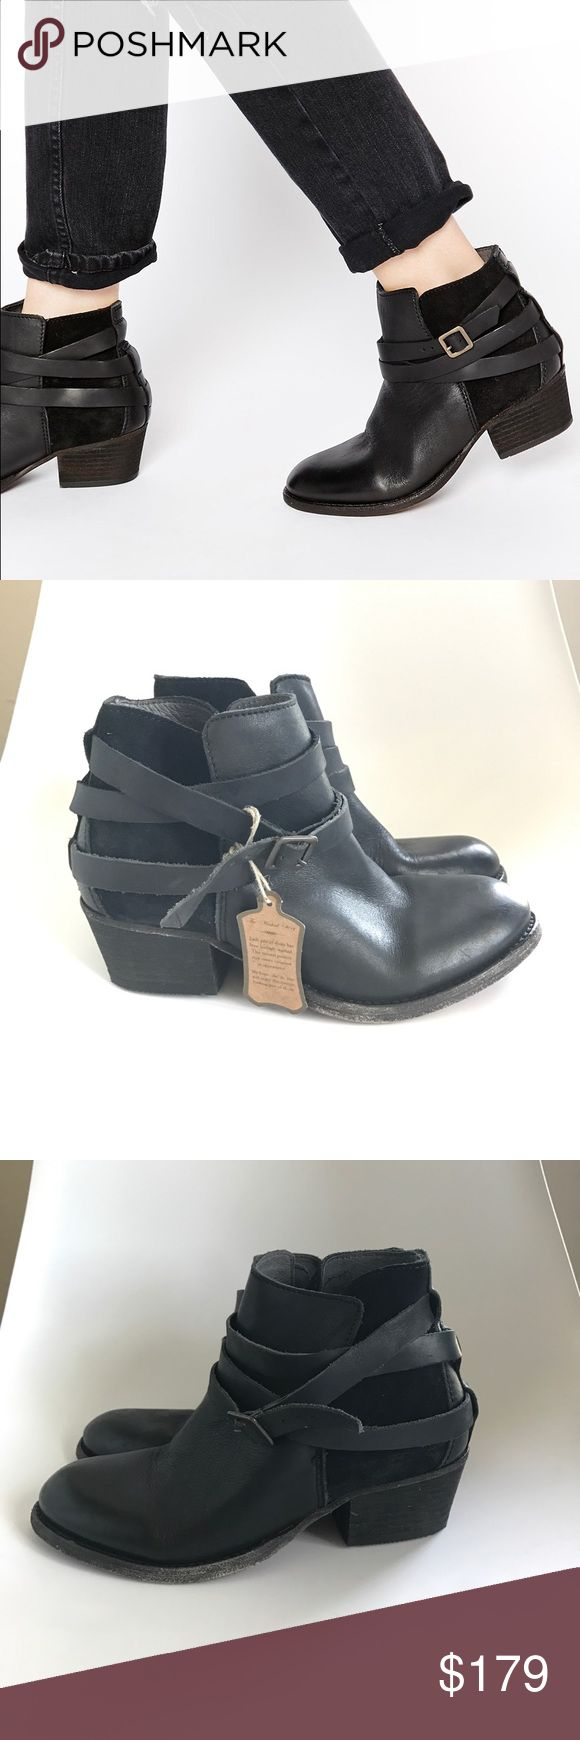 """H by Hudson Real Leather Horrigan Ankle Boots H by Hudson Real Leather """"Horrigan"""" Leather Boots in Size US6/ EU36. Brand new, never used and in an excellent condition. These boots are super famous among bloggers and are shown on many social media platforms. Handcrafted and made in Portugal. No trade, sorry! H By Hudson Shoes Ankle Boots & Booties"""